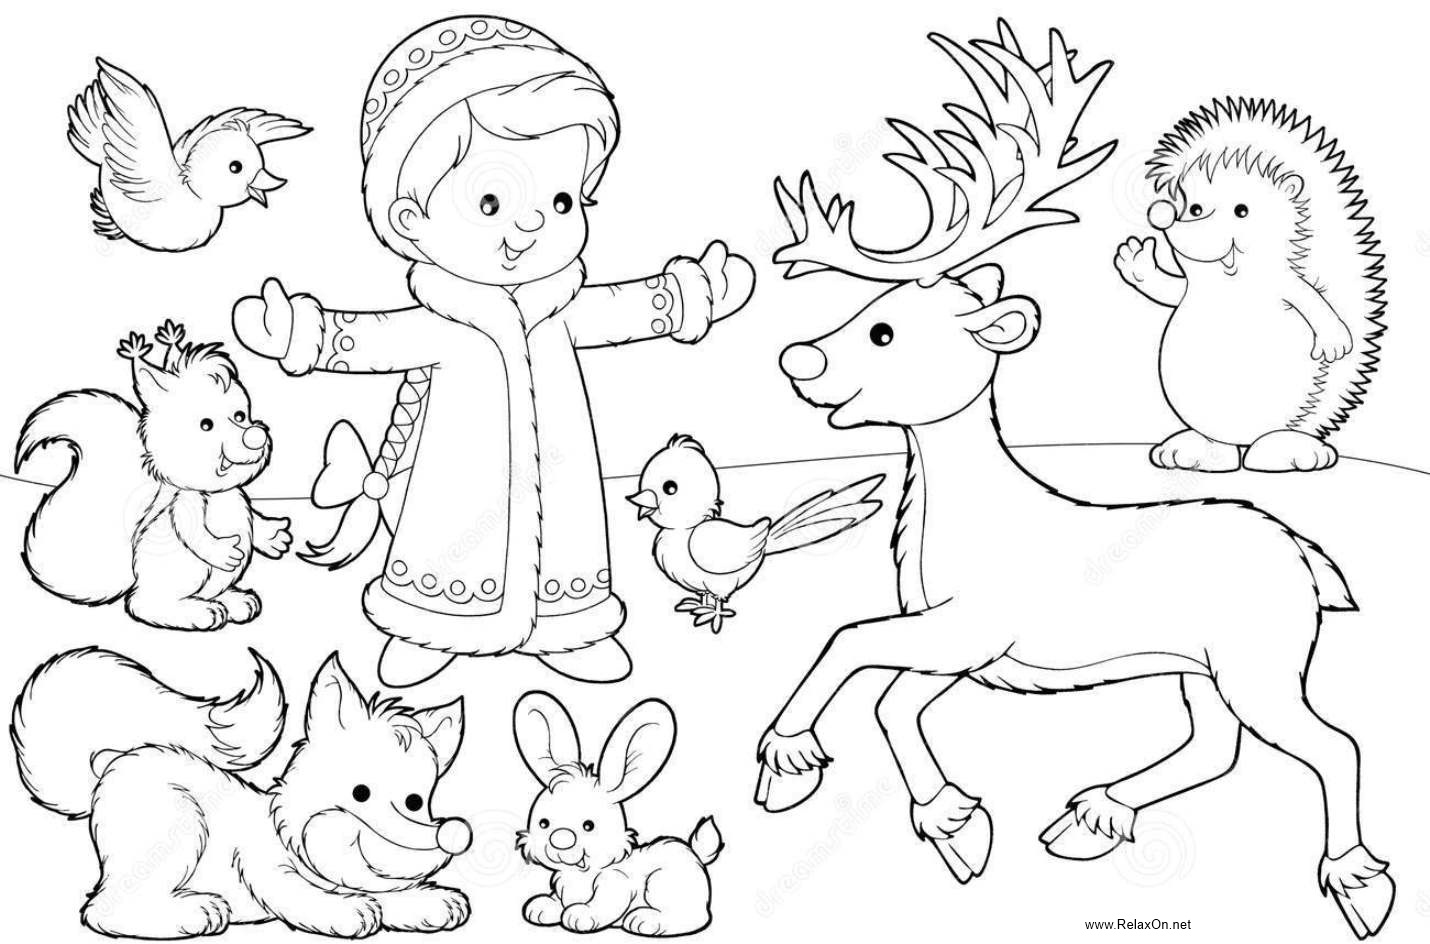 http://www.dreamstime.com/royalty-free-stock-photos-christmas-coloring-page-image14265268